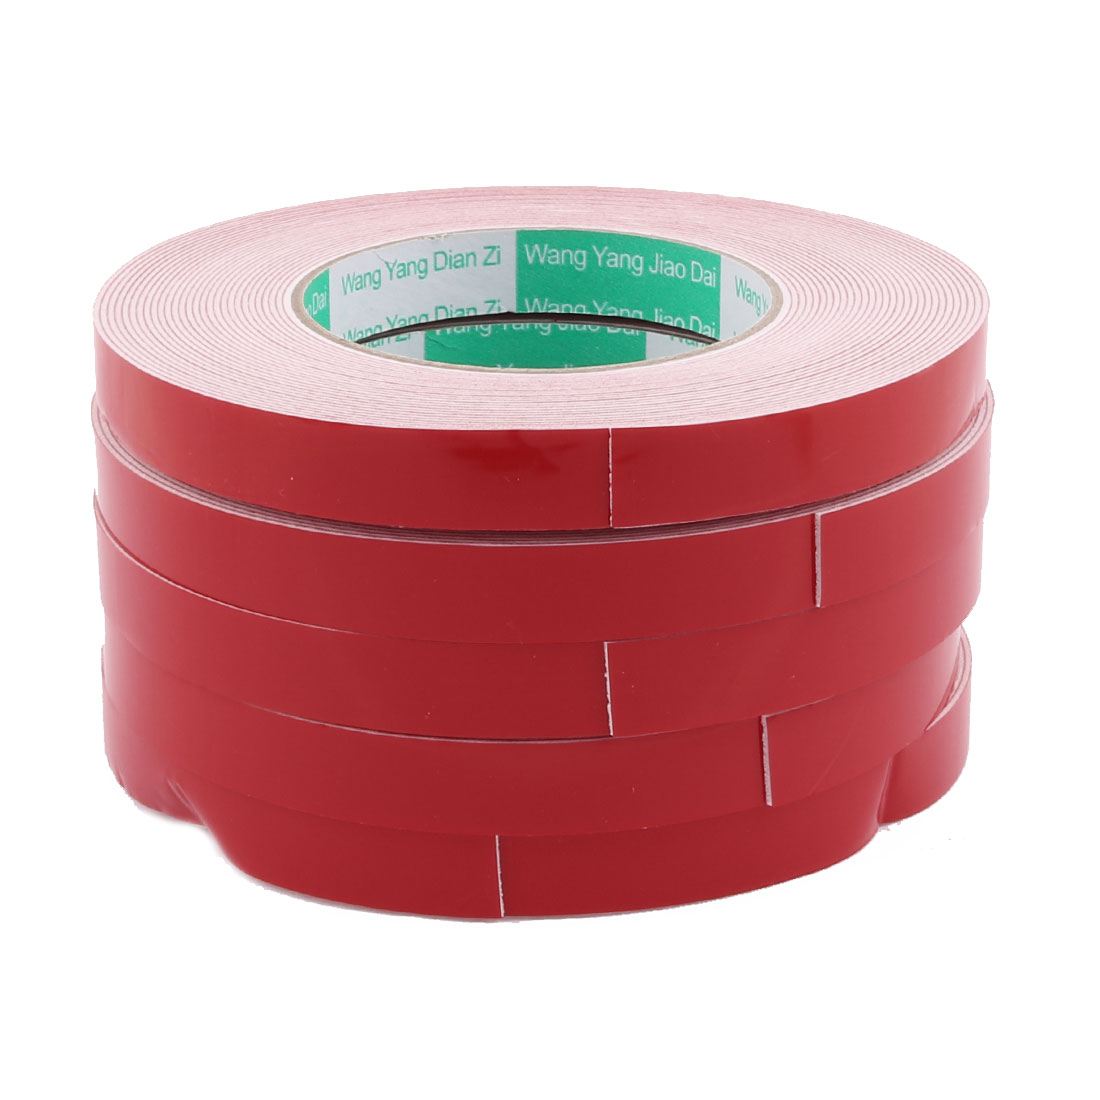 5PCS 10M Length 15 x 1mm White Red Double Sided Waterproof Sponge Tape for Car